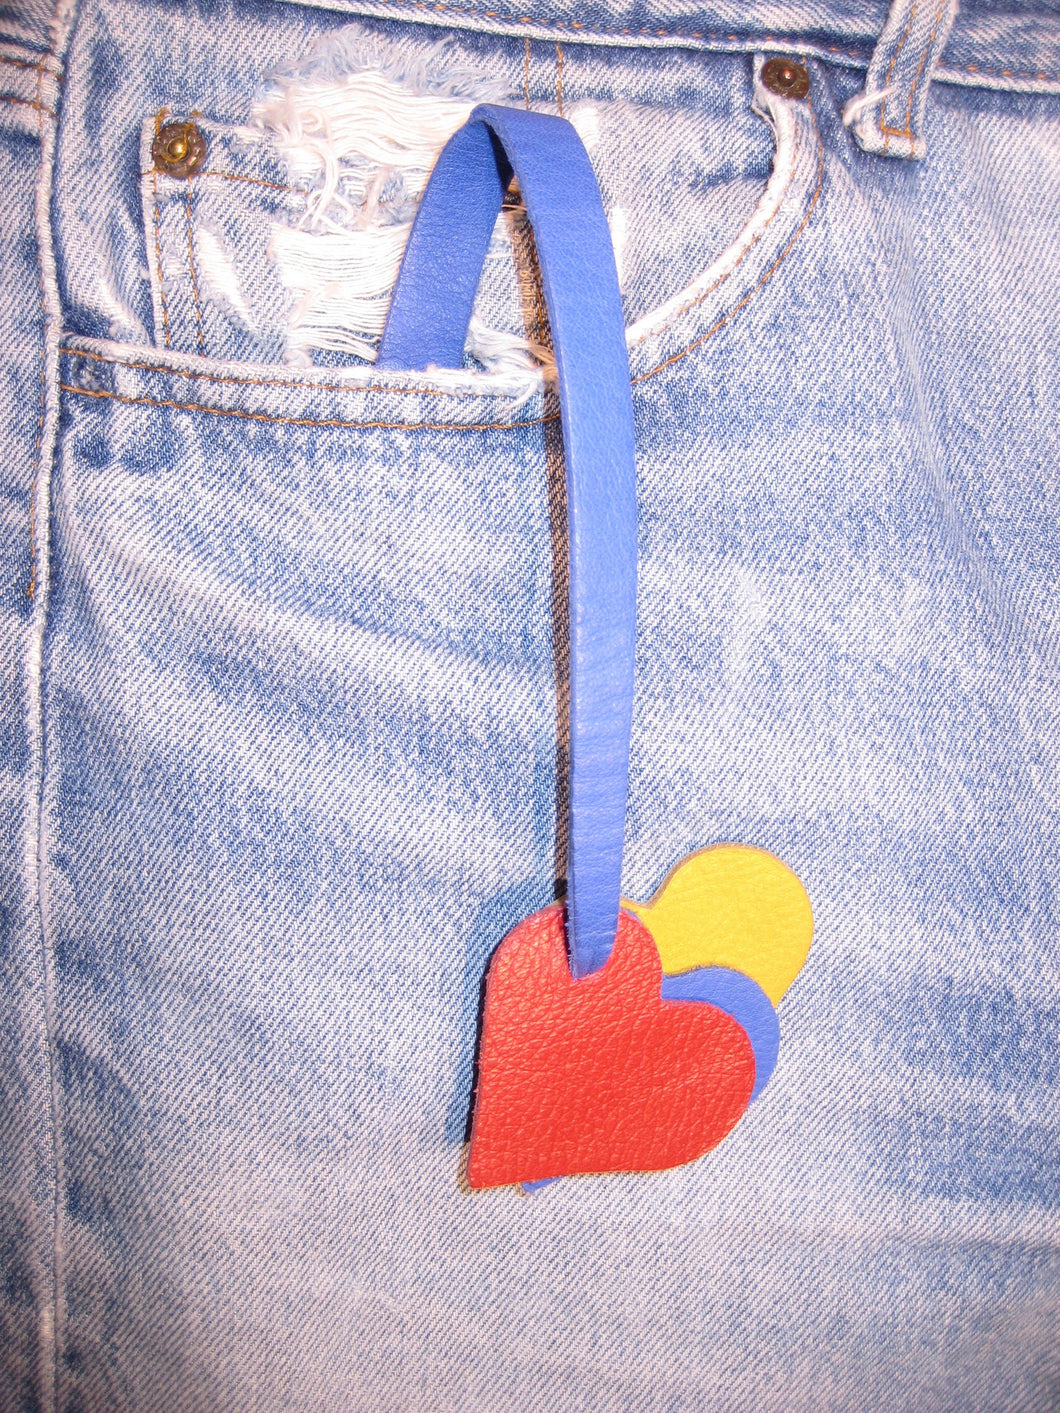 keetail blue with three primary colors heart keepods